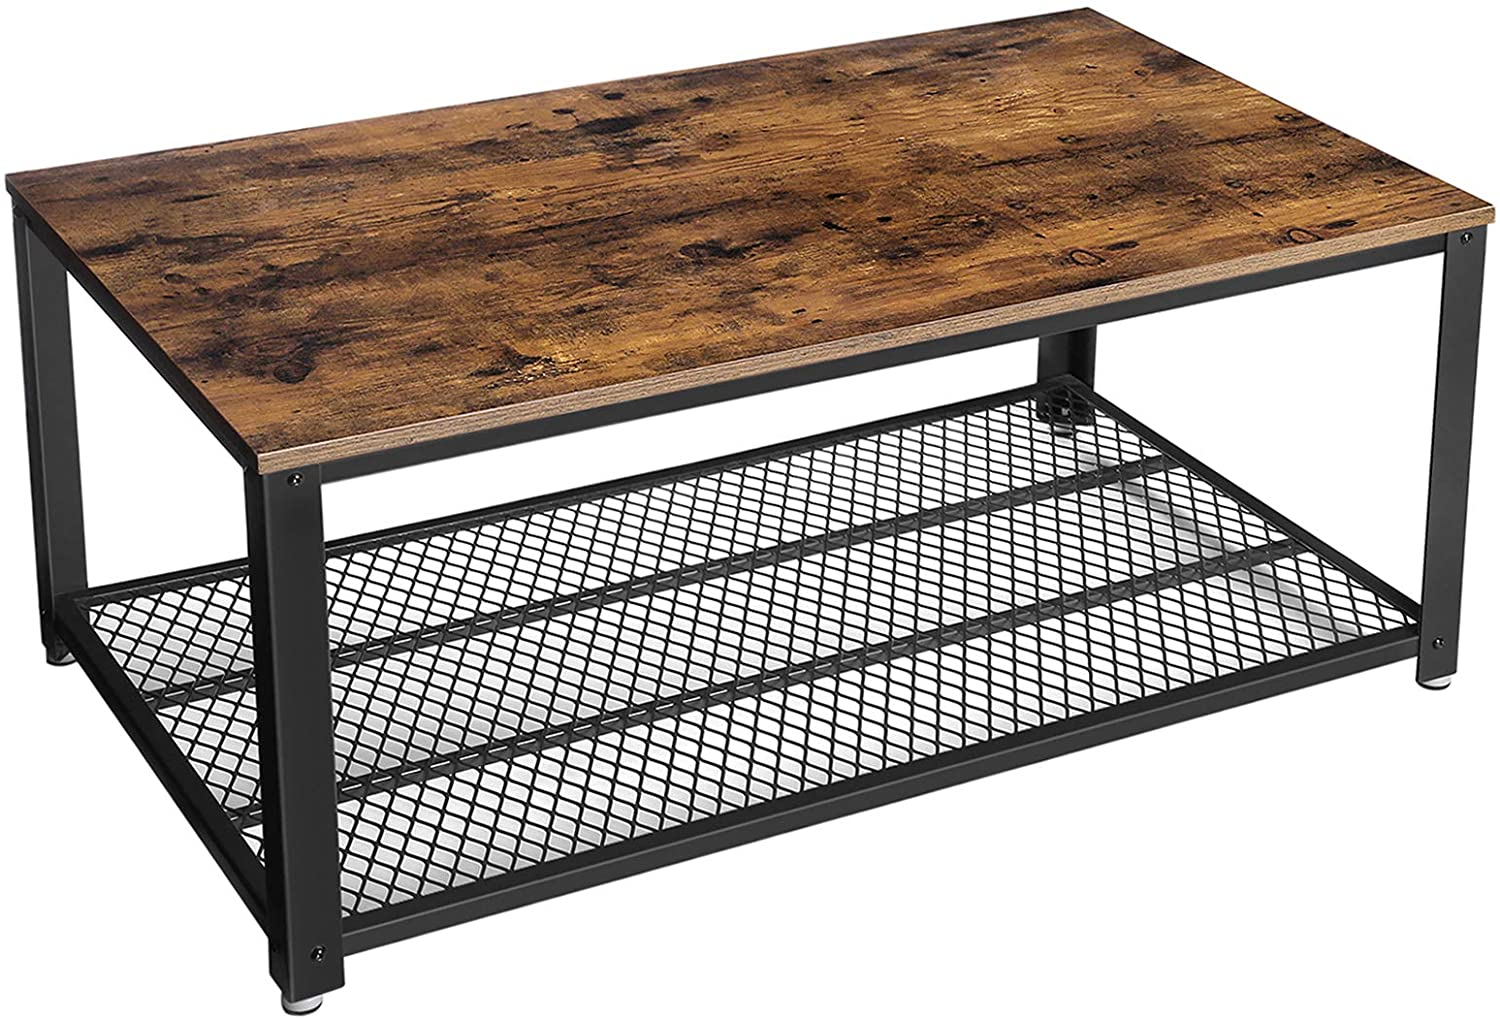 Enjoy fast, free nationwide shipping!  Family owned and operated, HawkinsWoodshop.com is your one stop shop for affordable furniture.  Shop HawkinsWoodshop.com for solid wood & metal modern, traditional, contemporary, industrial, custom, rustic, and farmhouse furniture including our Ryan Industrial Coffee Table w/ Mesh Storage Shelf.